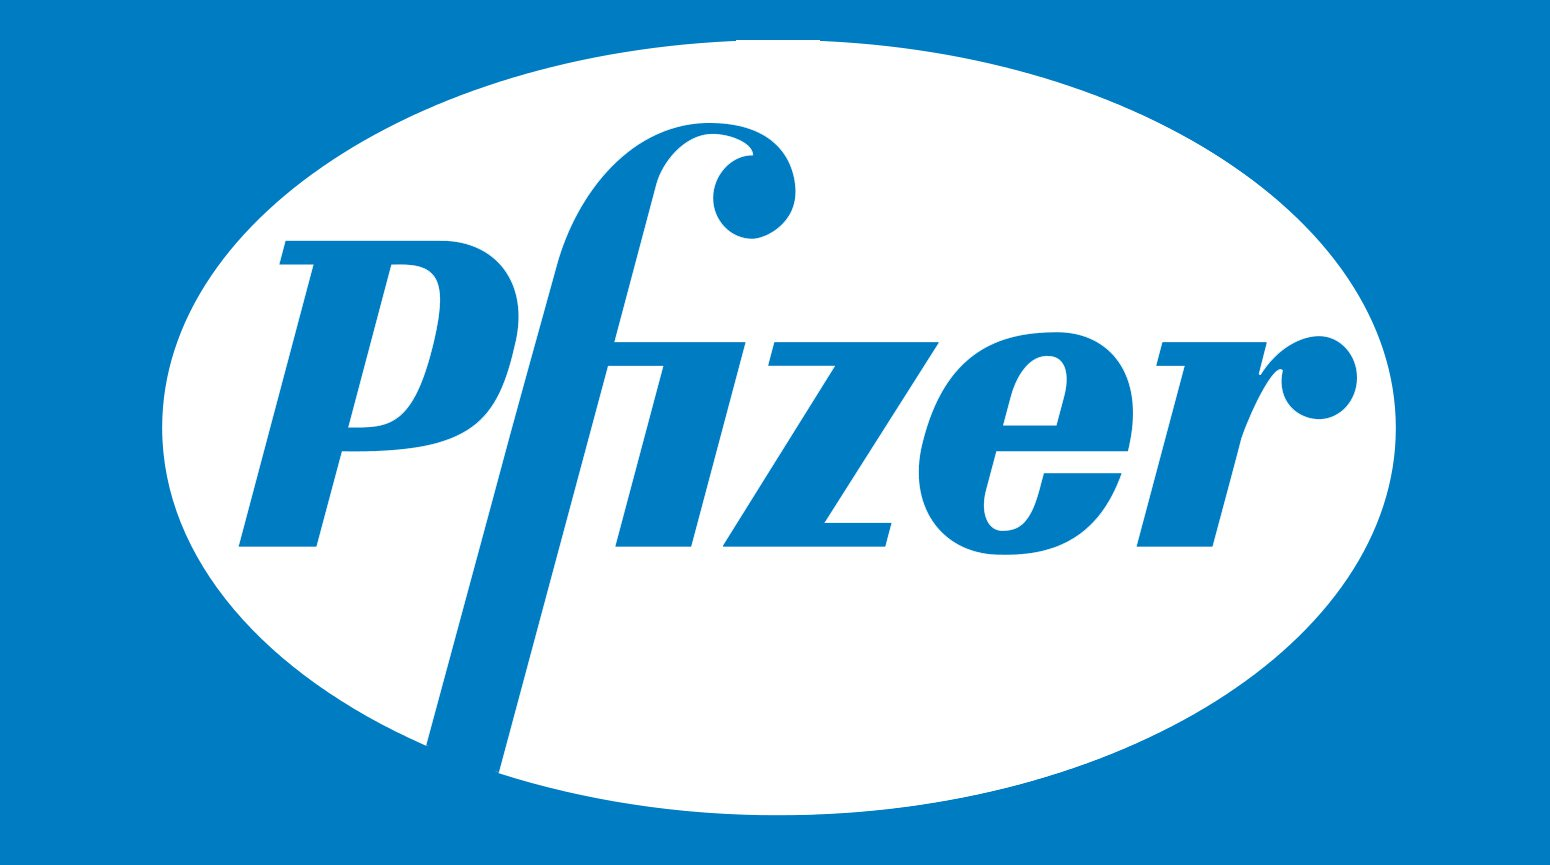 Pfizer logo and symbol, meaning, history, PNG Sr Mgr, Digital Architecture, Infrastructure PFIZER